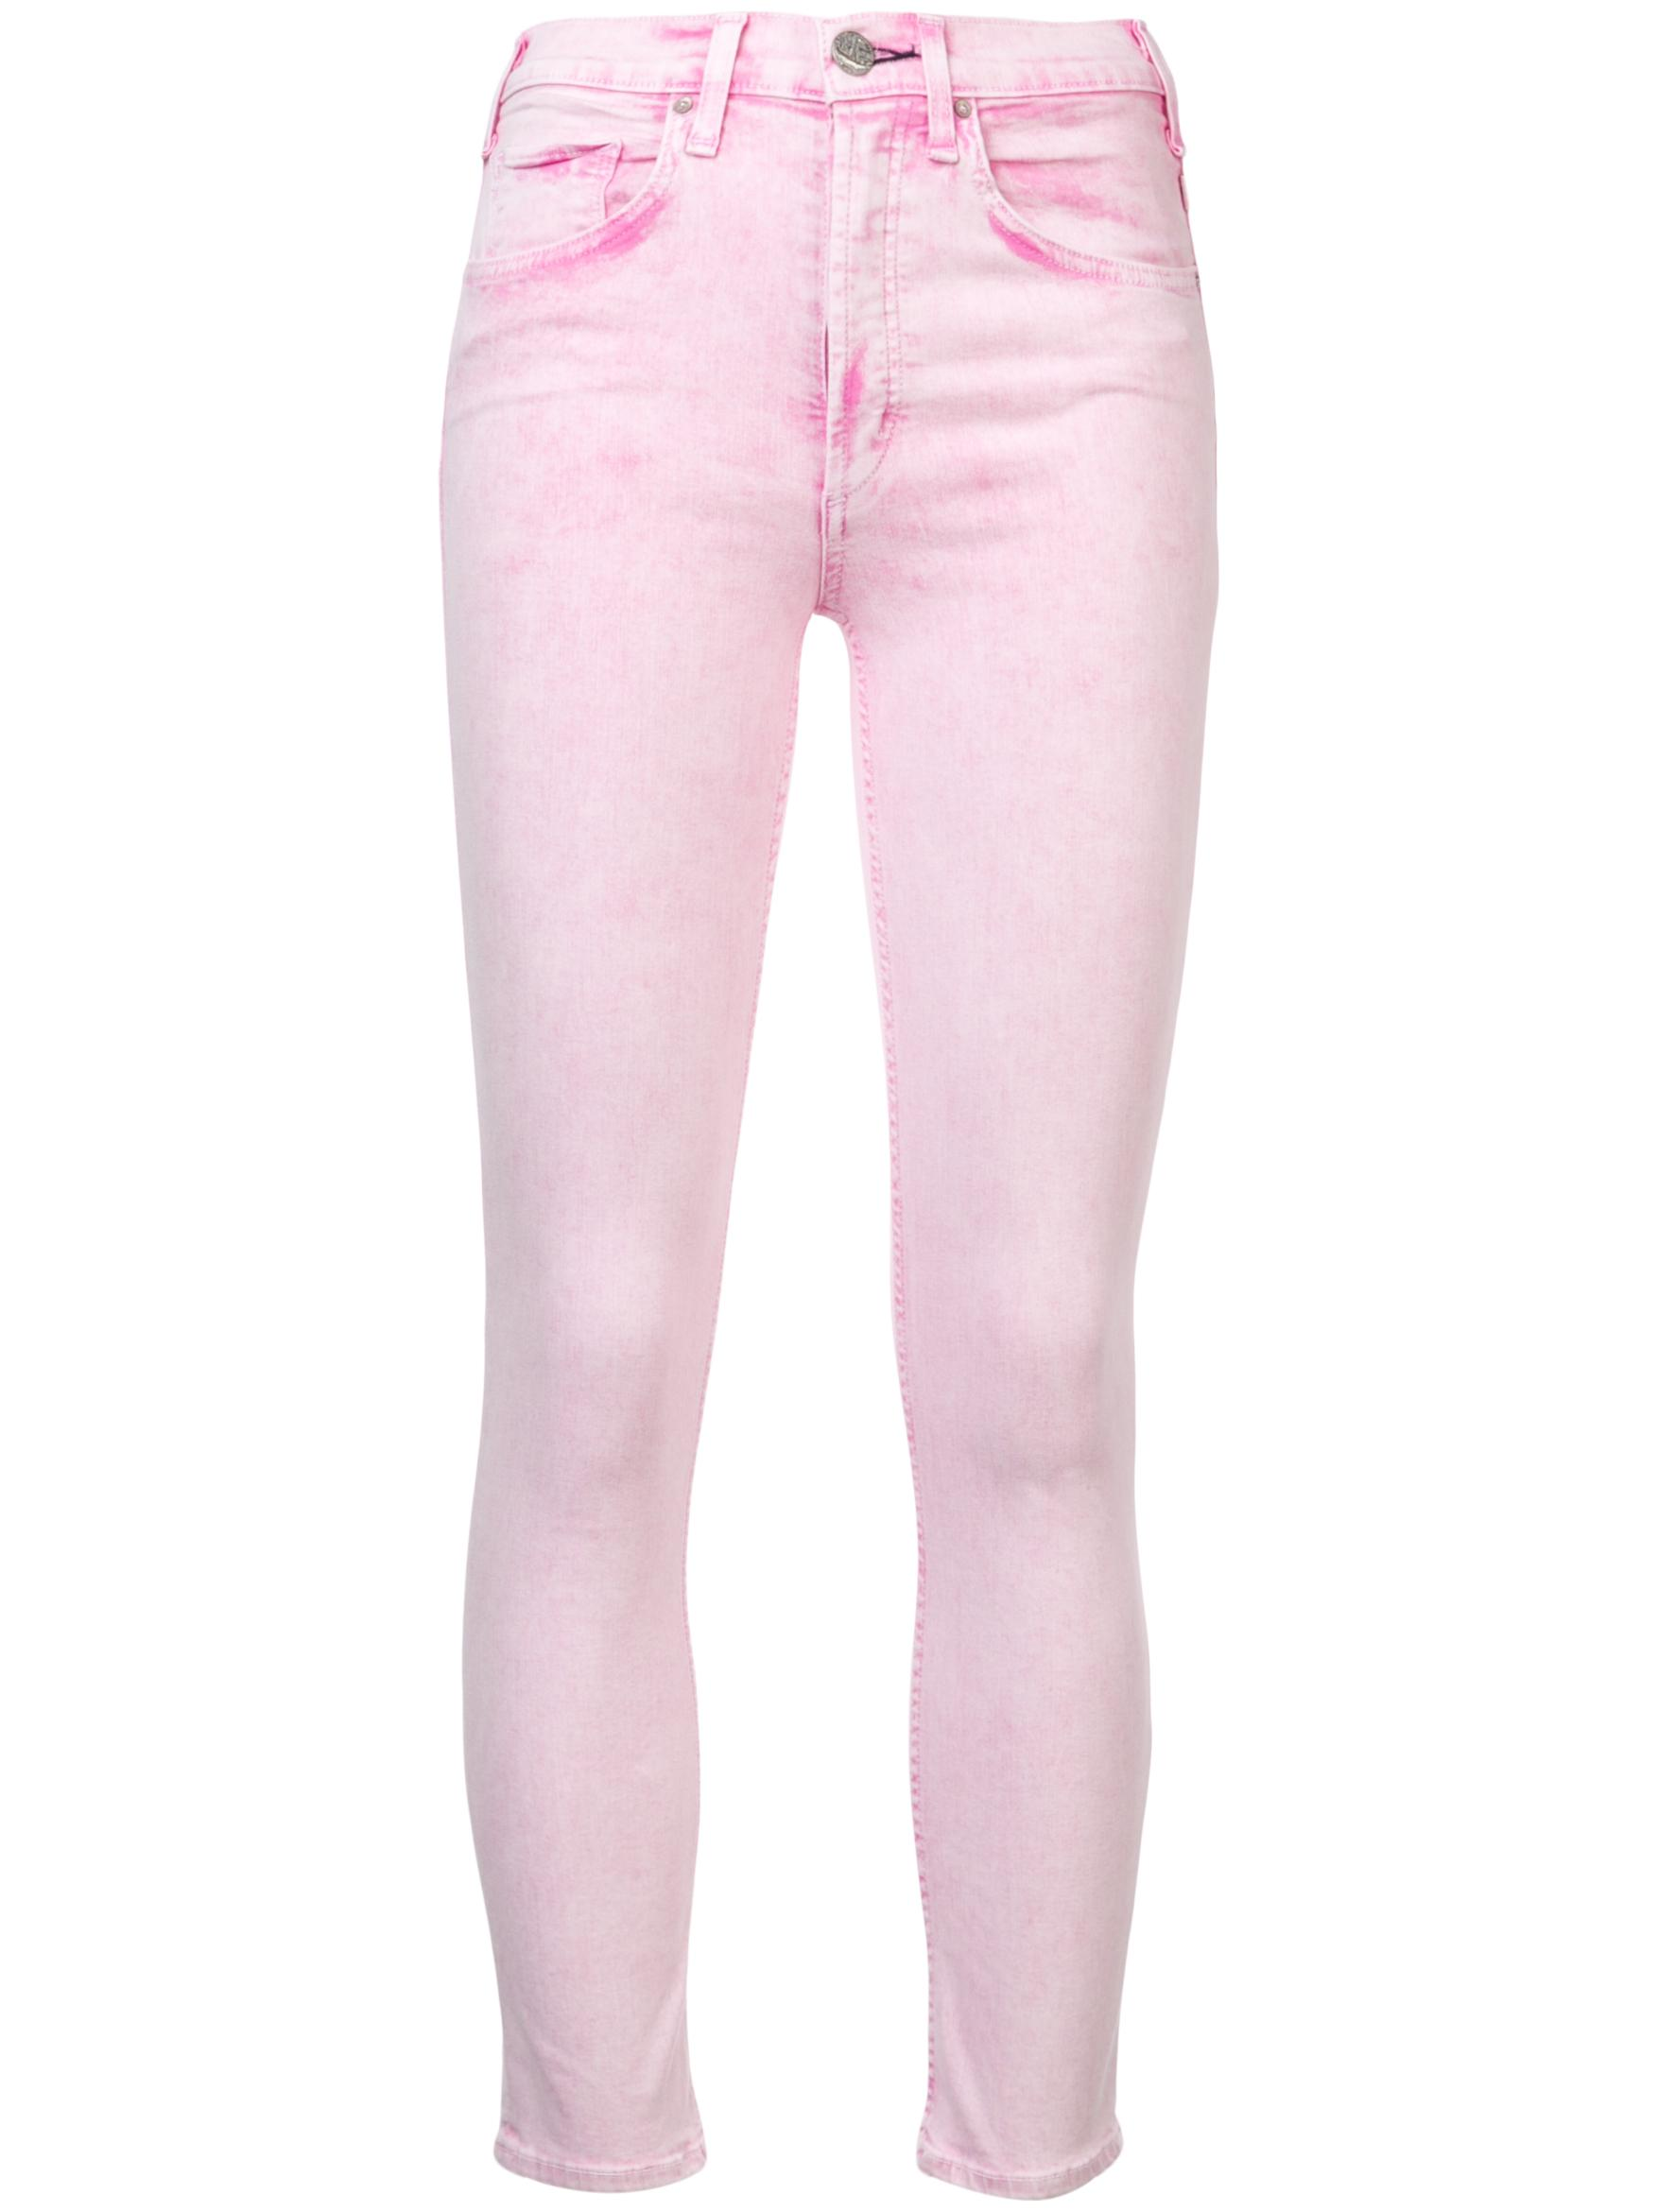 Valetta Cropped Jeans